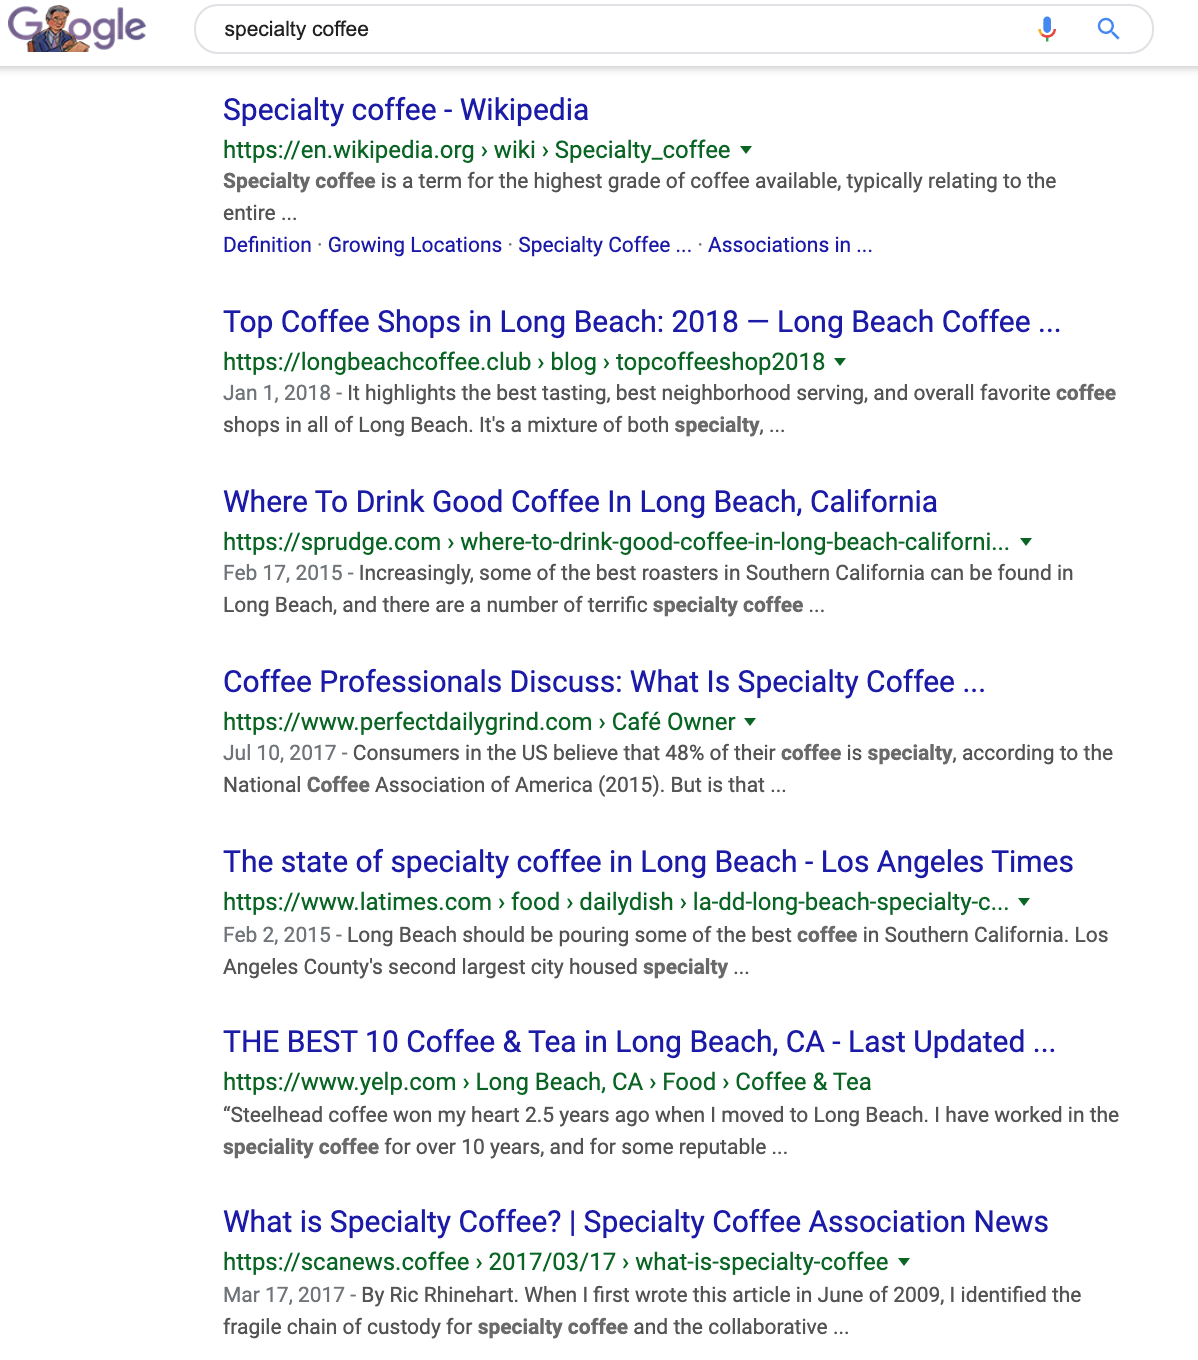 finding the best keywords